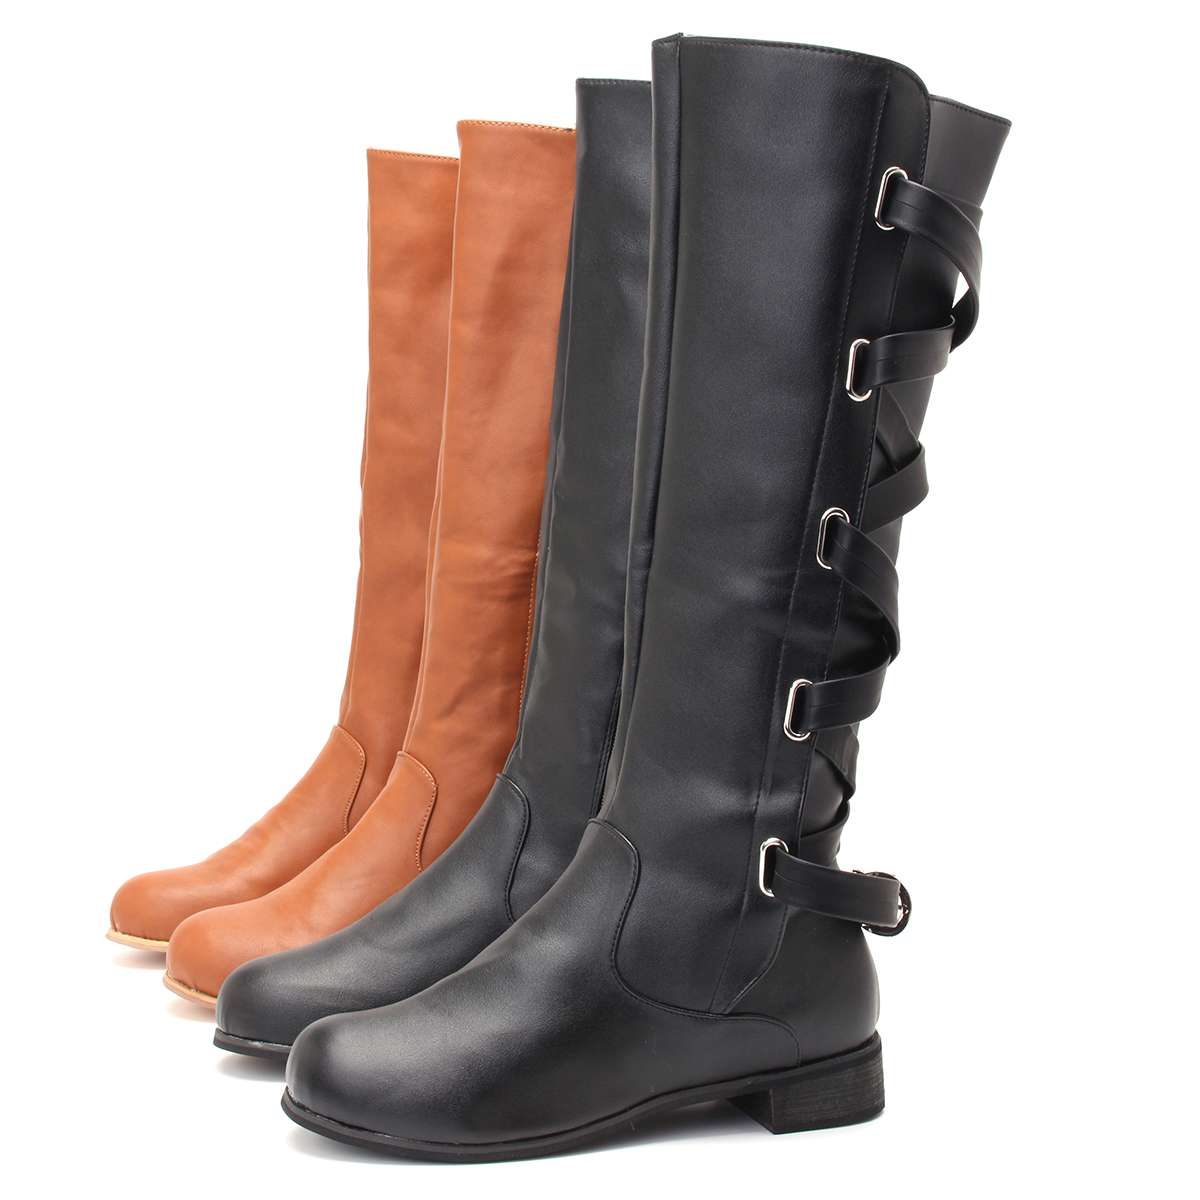 Nis Women Long Boots Fashion Buckle Riding Knee Low Heels Knee High Boots Leather Slip-On Lace Up Long Winter Boots Botas Mujer